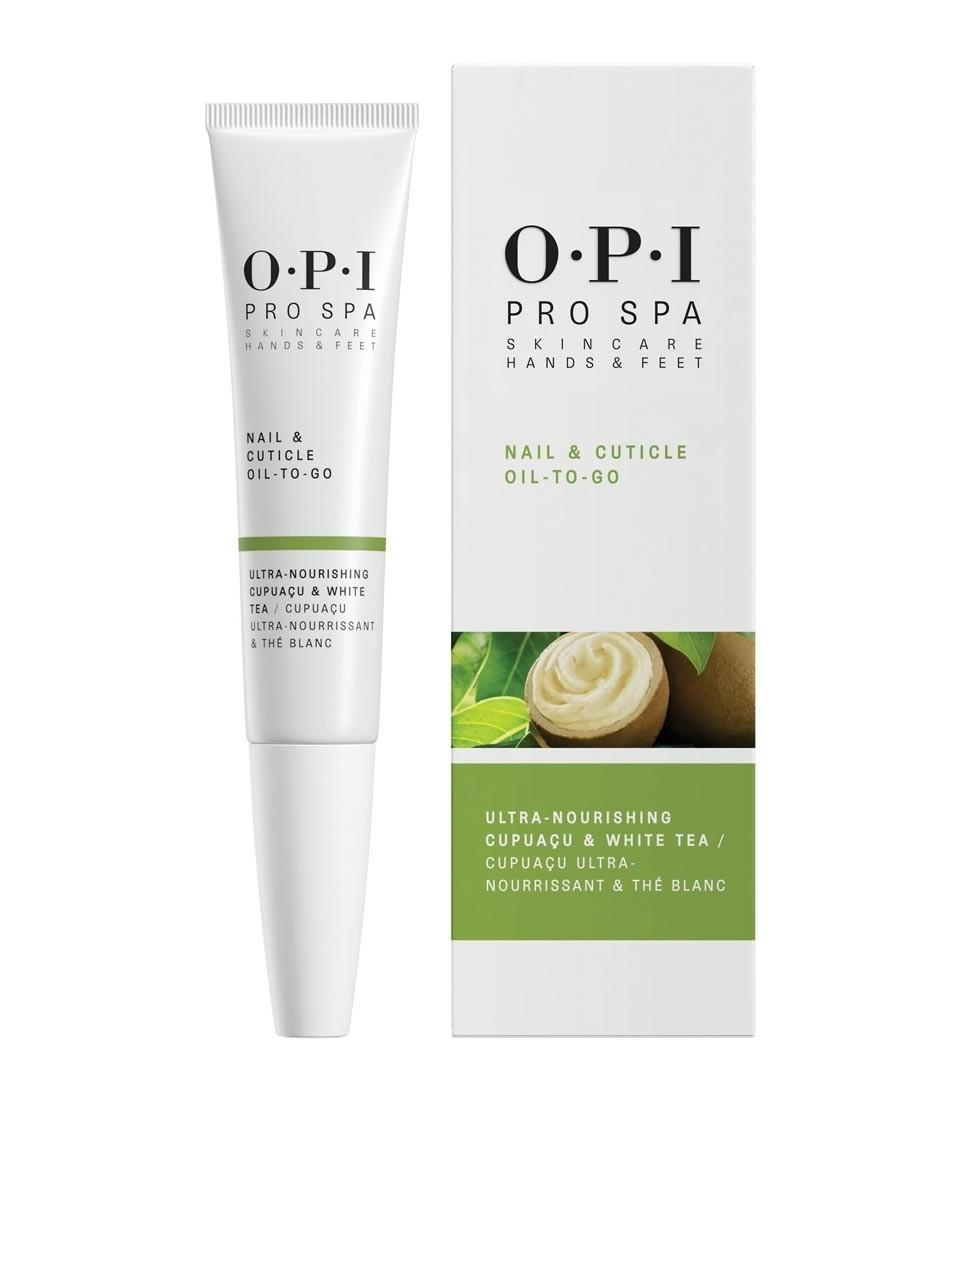 O.p.i. Pro Spa / Opi - Nail &cuticle Oil To Go By Star-Whaley.